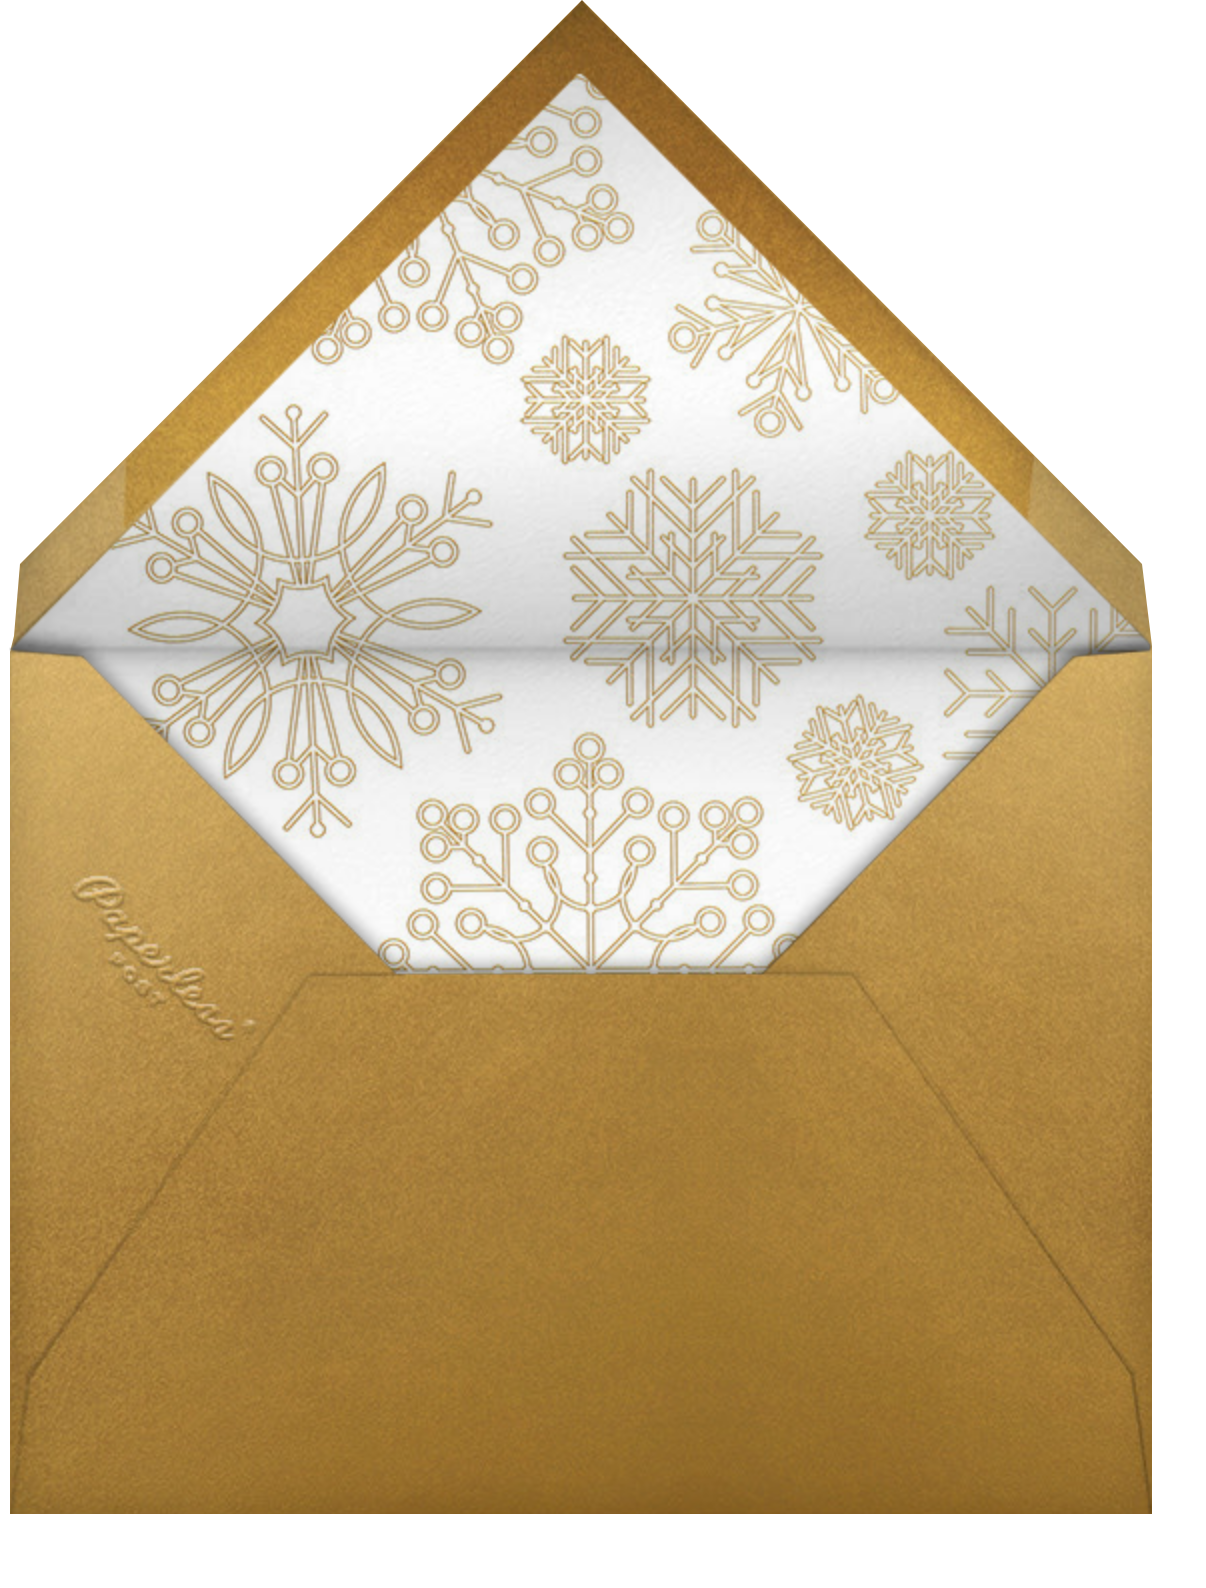 Etched Snowflakes - Cream - Paperless Post - Business holiday cards - envelope back